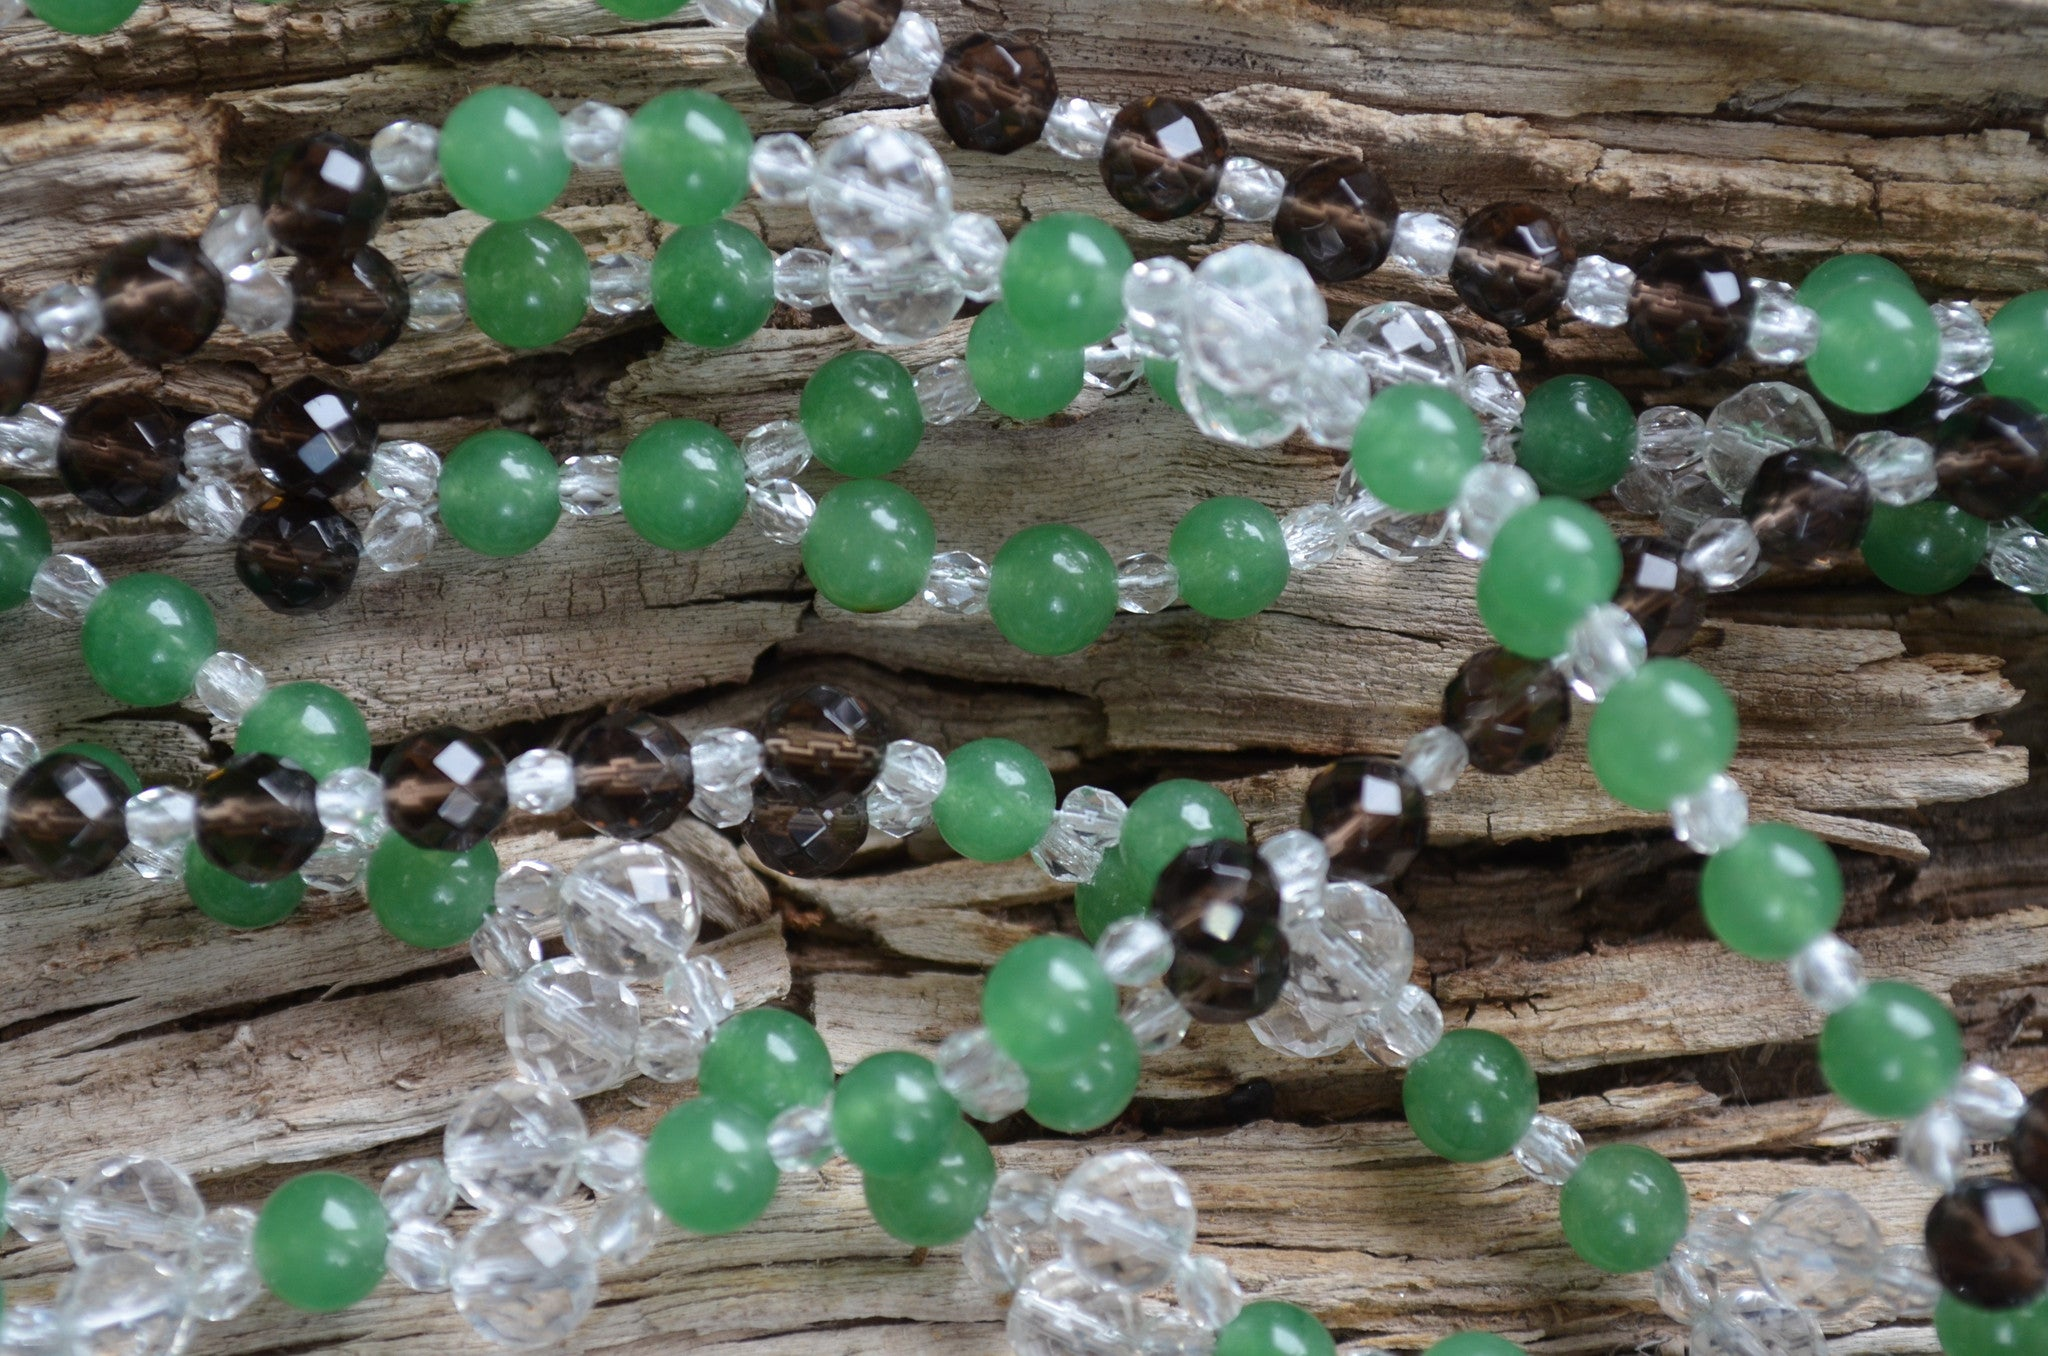 6mm Aventurine, Quartz, Smoky Quartz, Czech Crystal